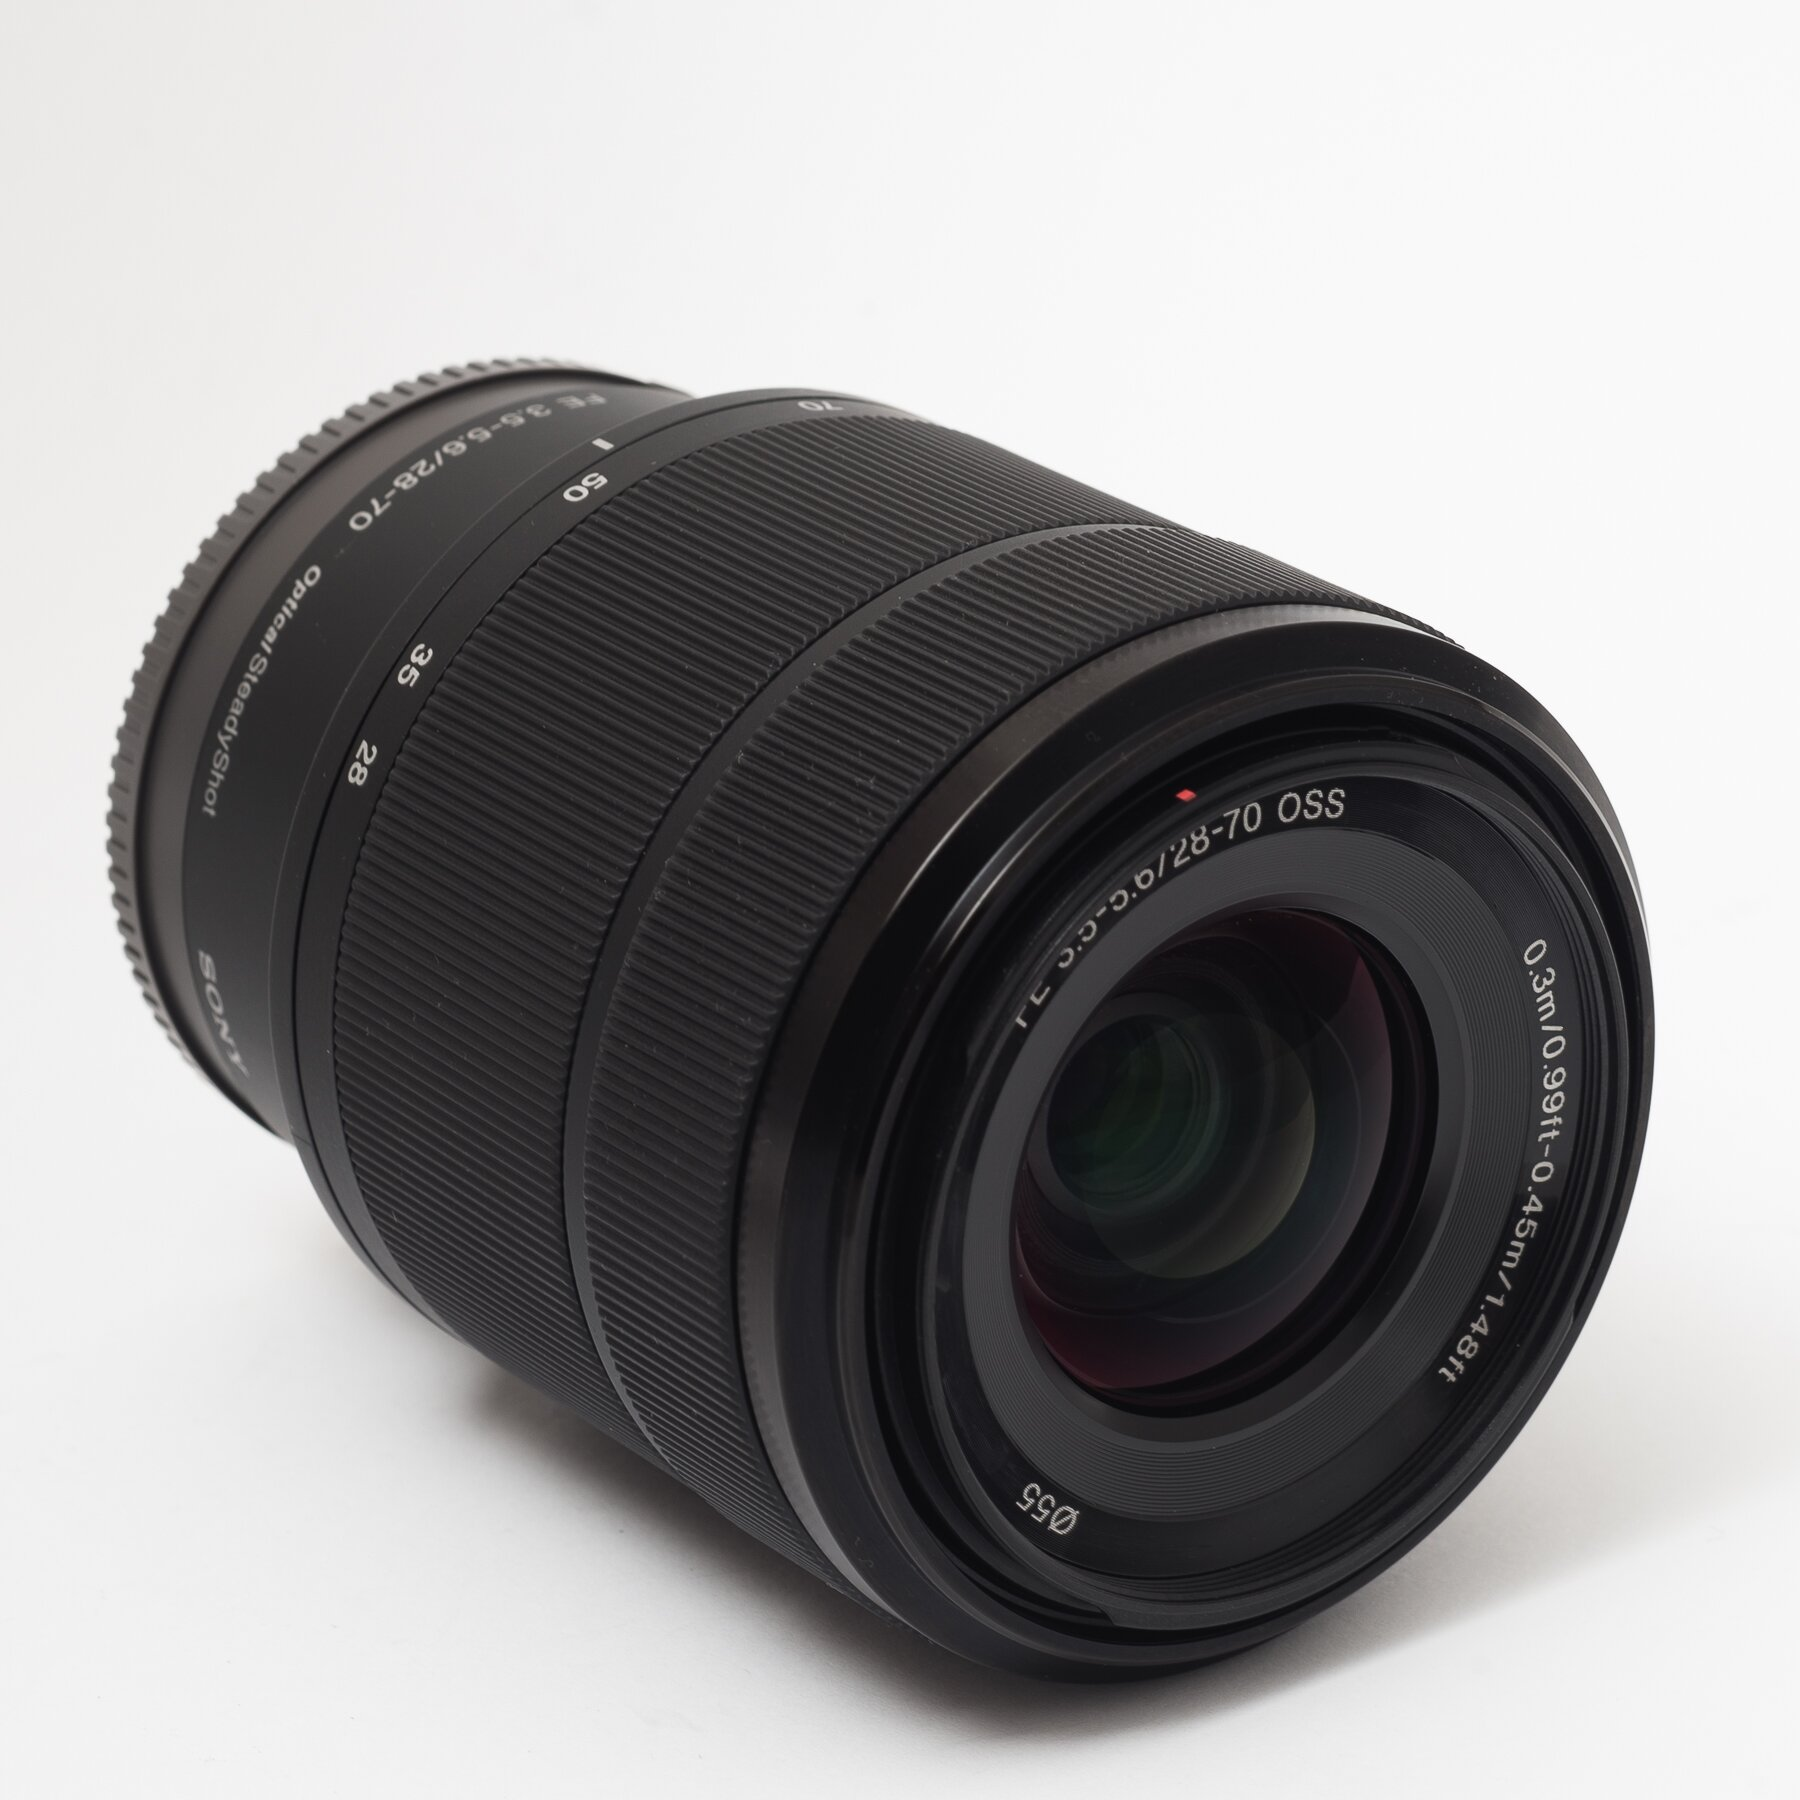 Об'єктив Sony FE 28-70mm f/3.5-5.6 OSS (E-mount) SEL2870